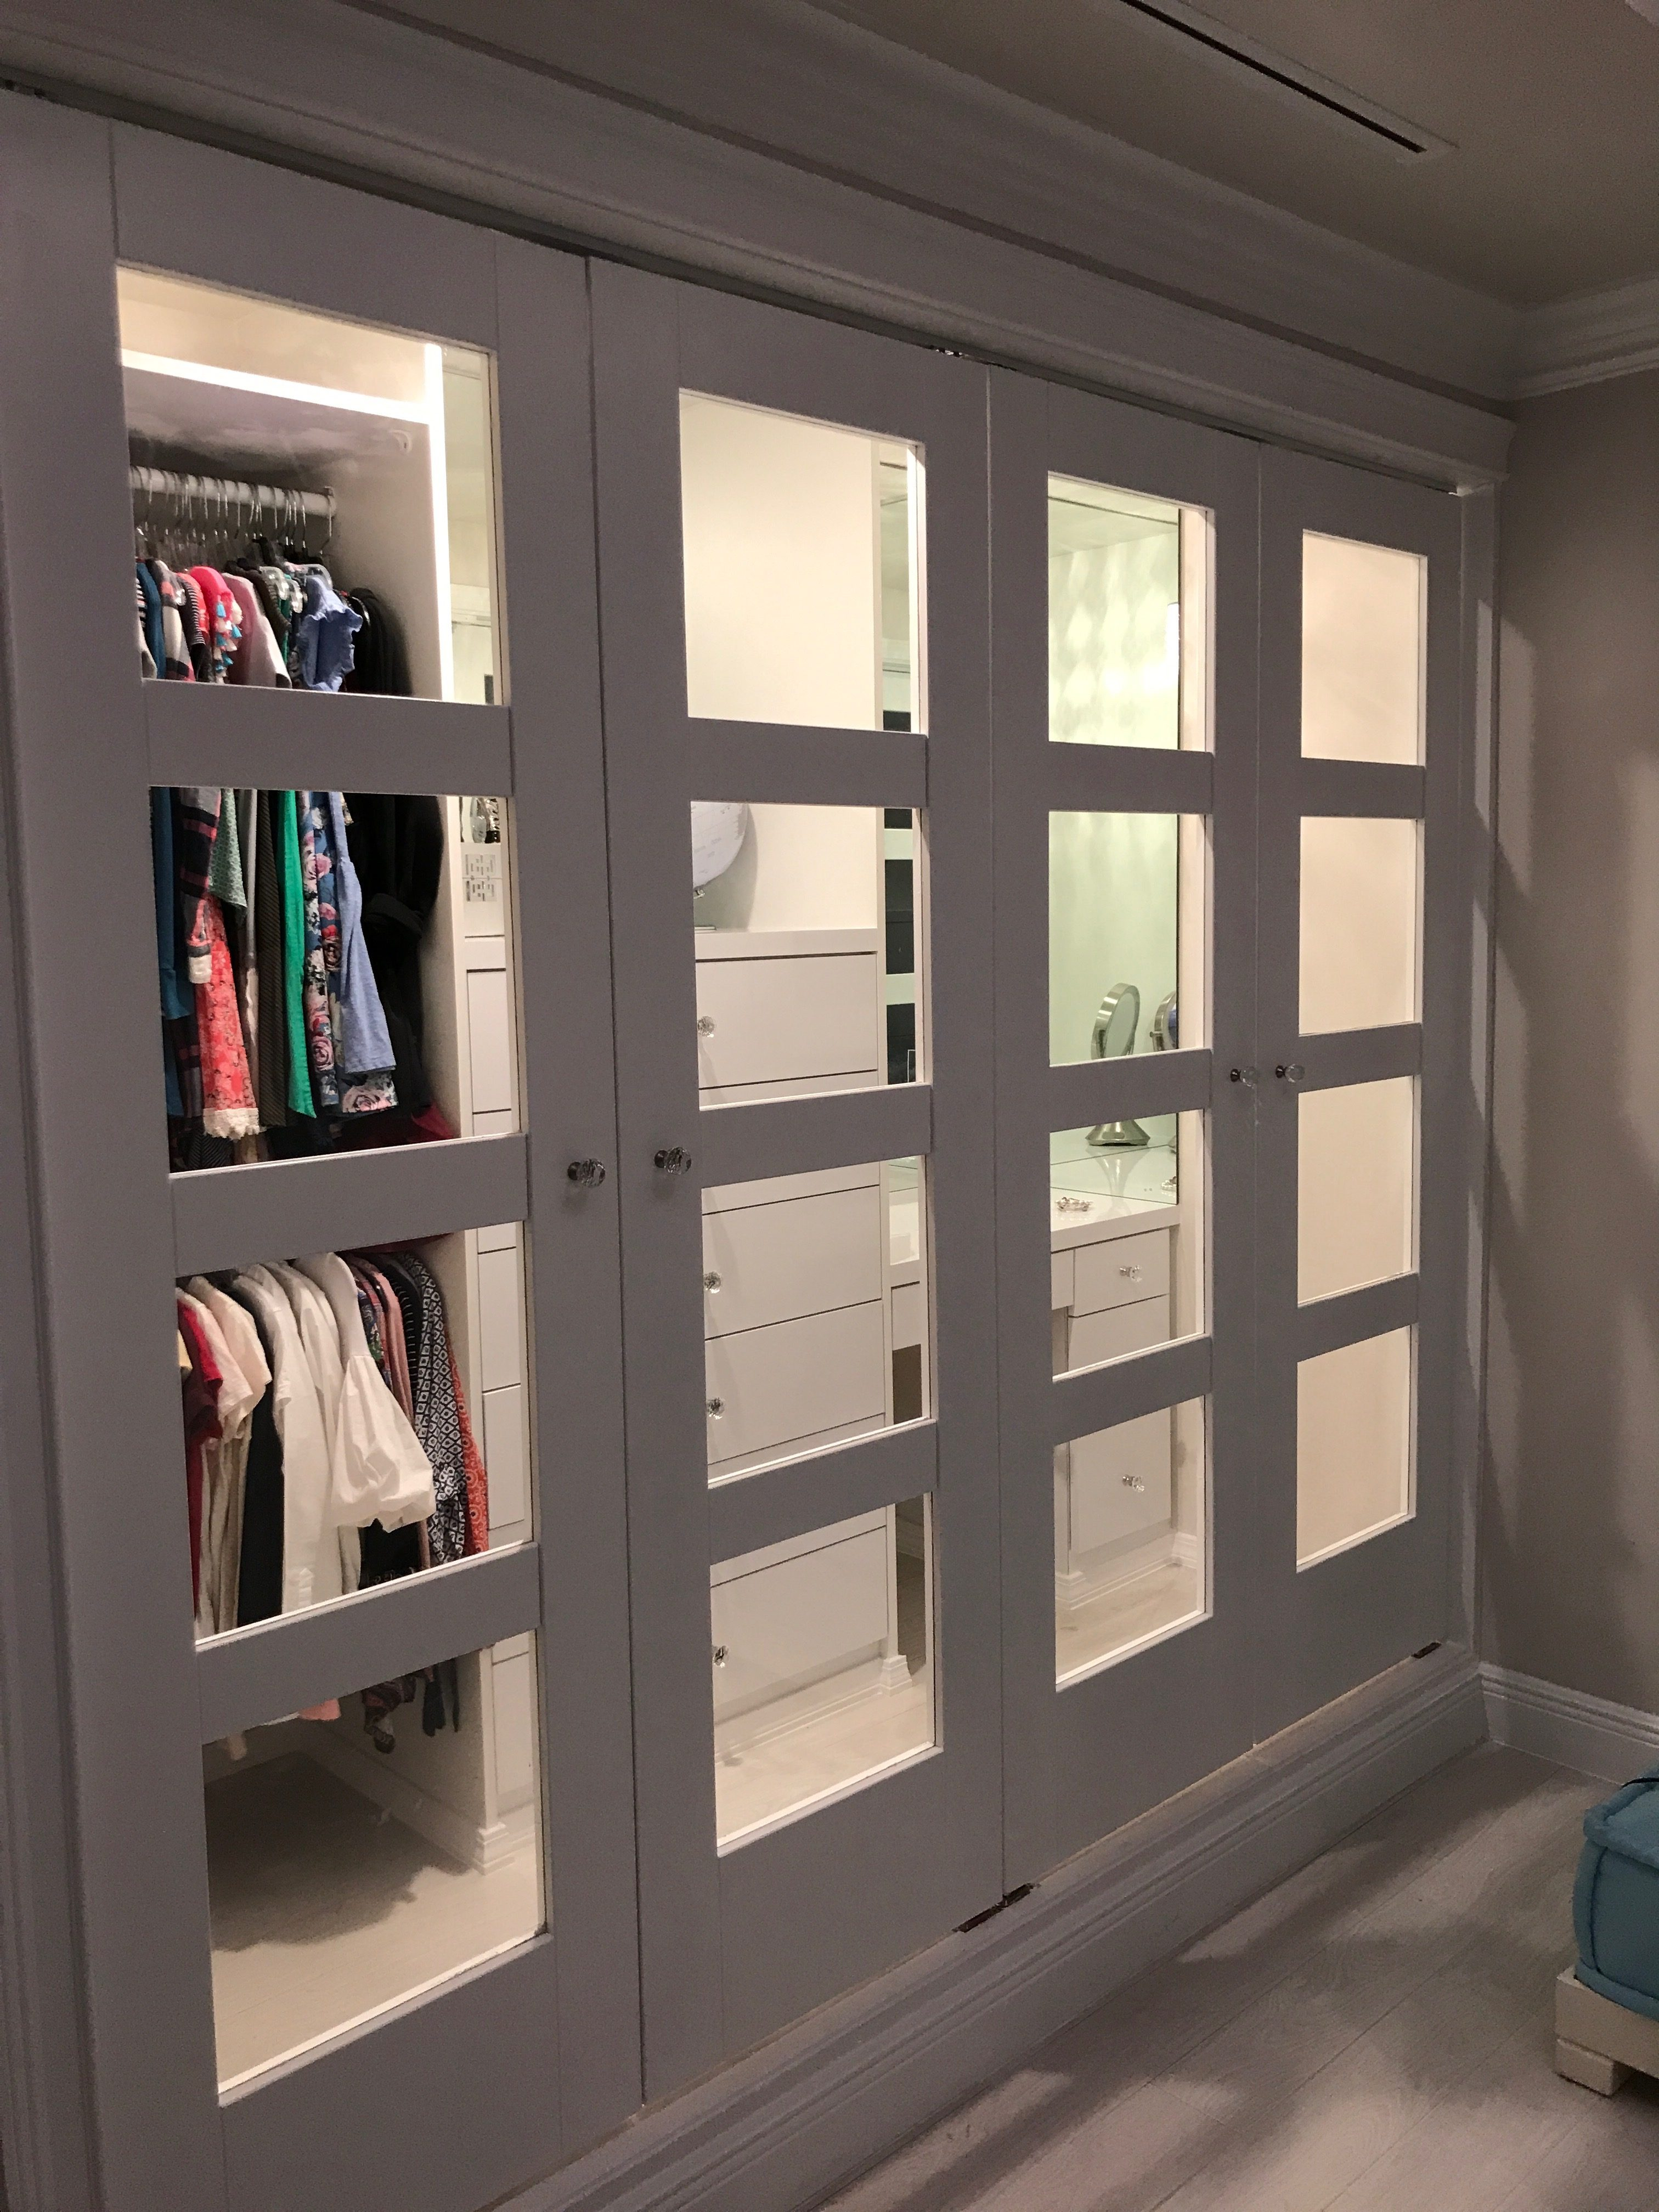 ... Ceiling Part And Added A Baseboard At The Bottom And Crown Molding To  The Top. So This Remodel Job Made This Out Dated Closet To A Beautiful  Modern One.